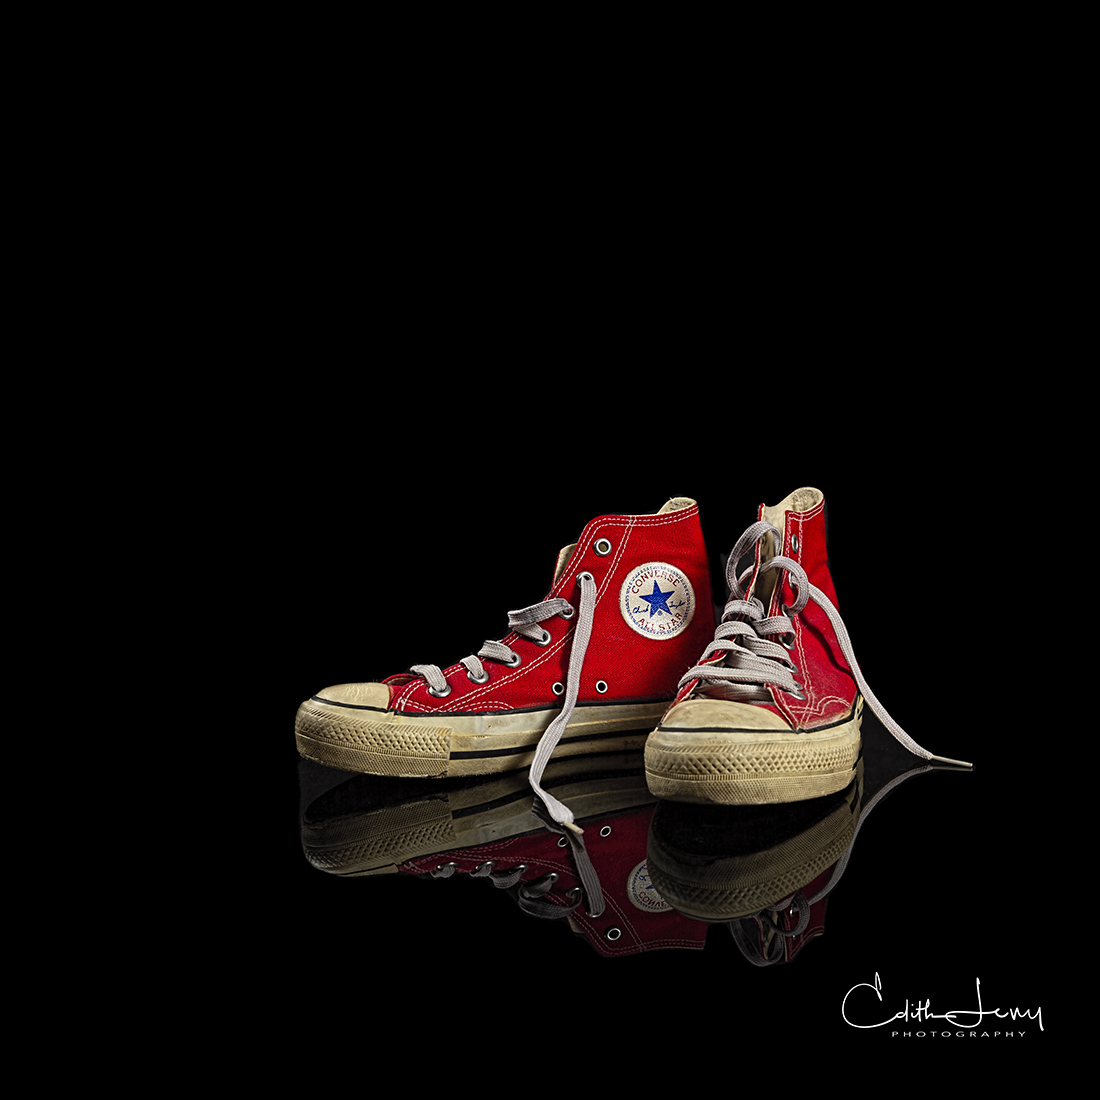 Converse, Chuck Tayler, All star, red, high top, classic, studio photography, photo